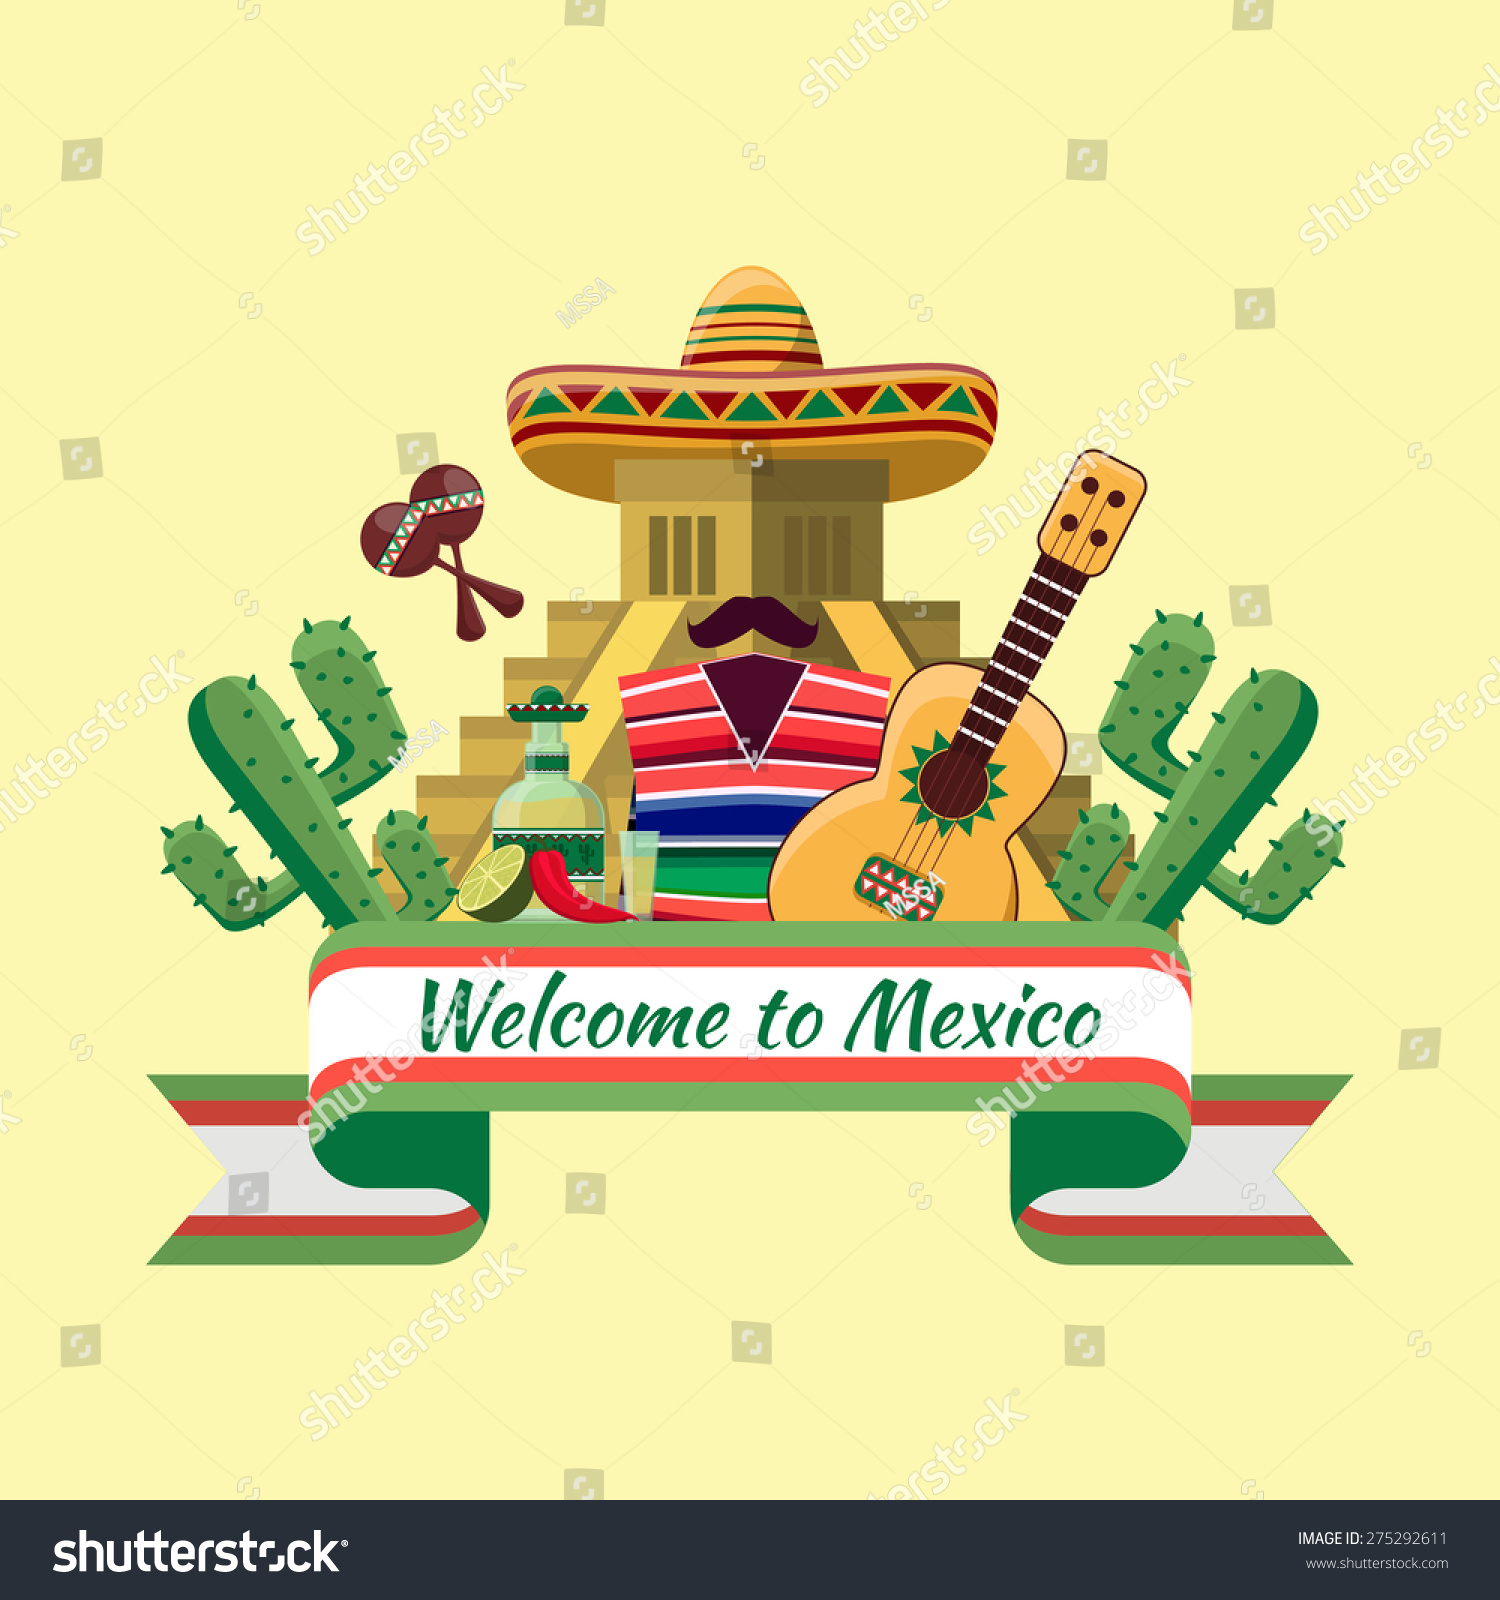 Welcome mexico poster mexican food cactus stock vector for Mexican logos images